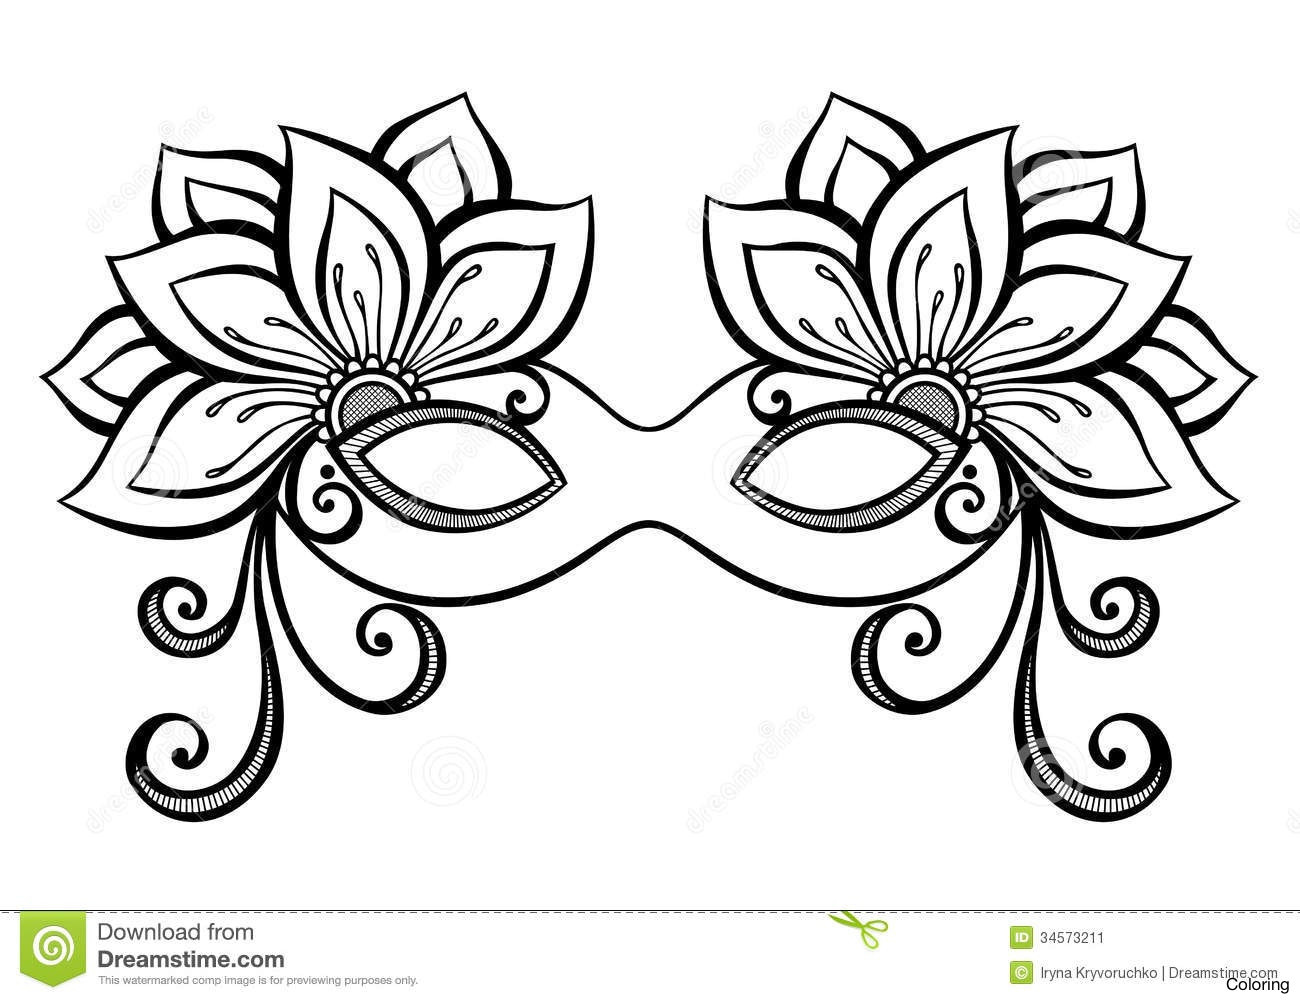 1300x1000 Free Download Mardi Gras Mask Coloring Pages Template To Print